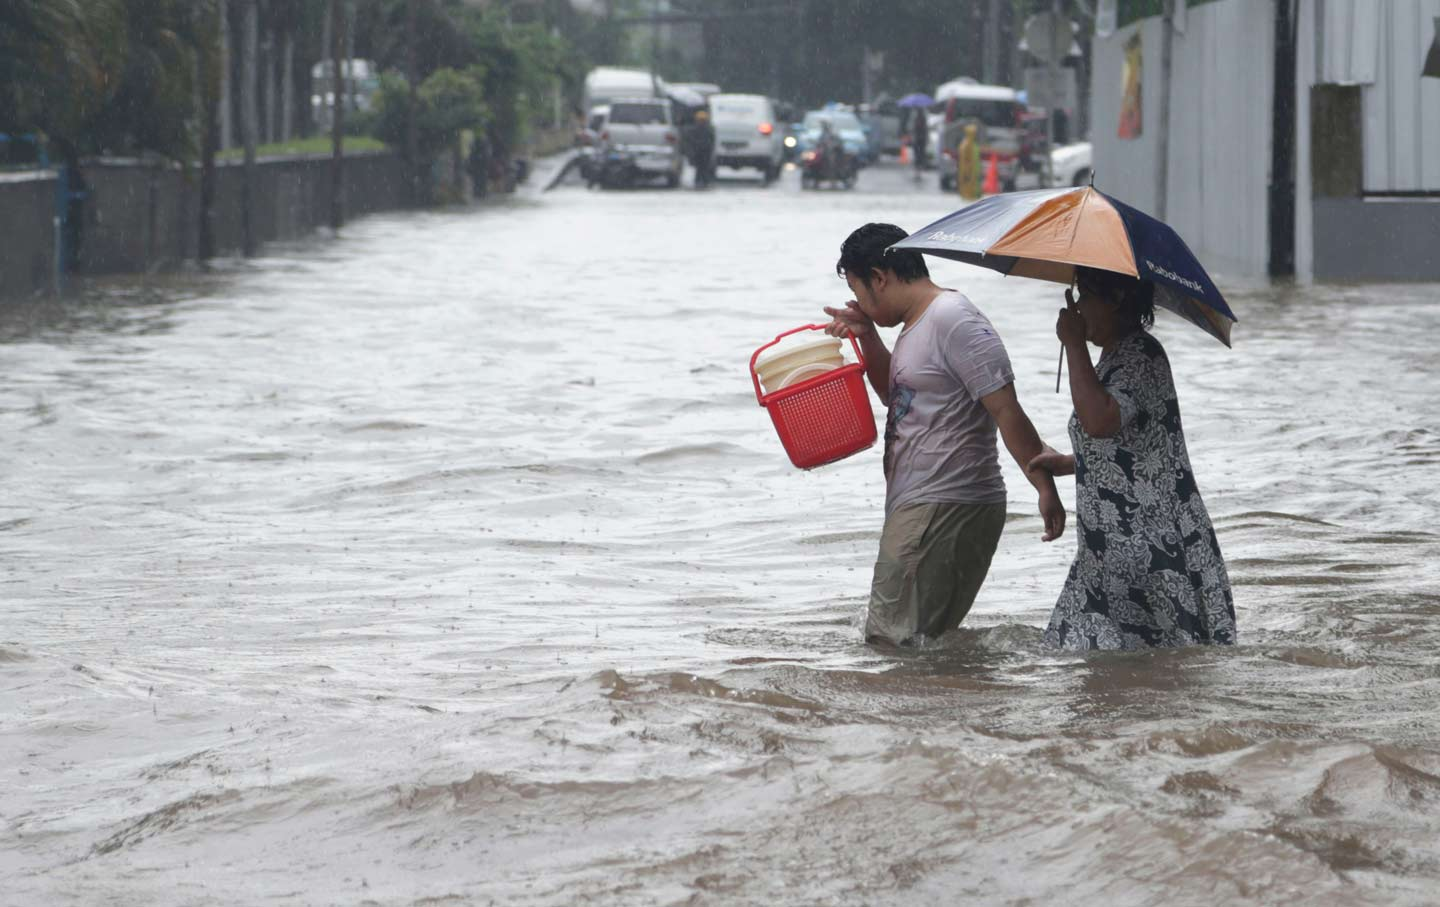 A couple wades through floodwaters in Jakarta, Indonesia.